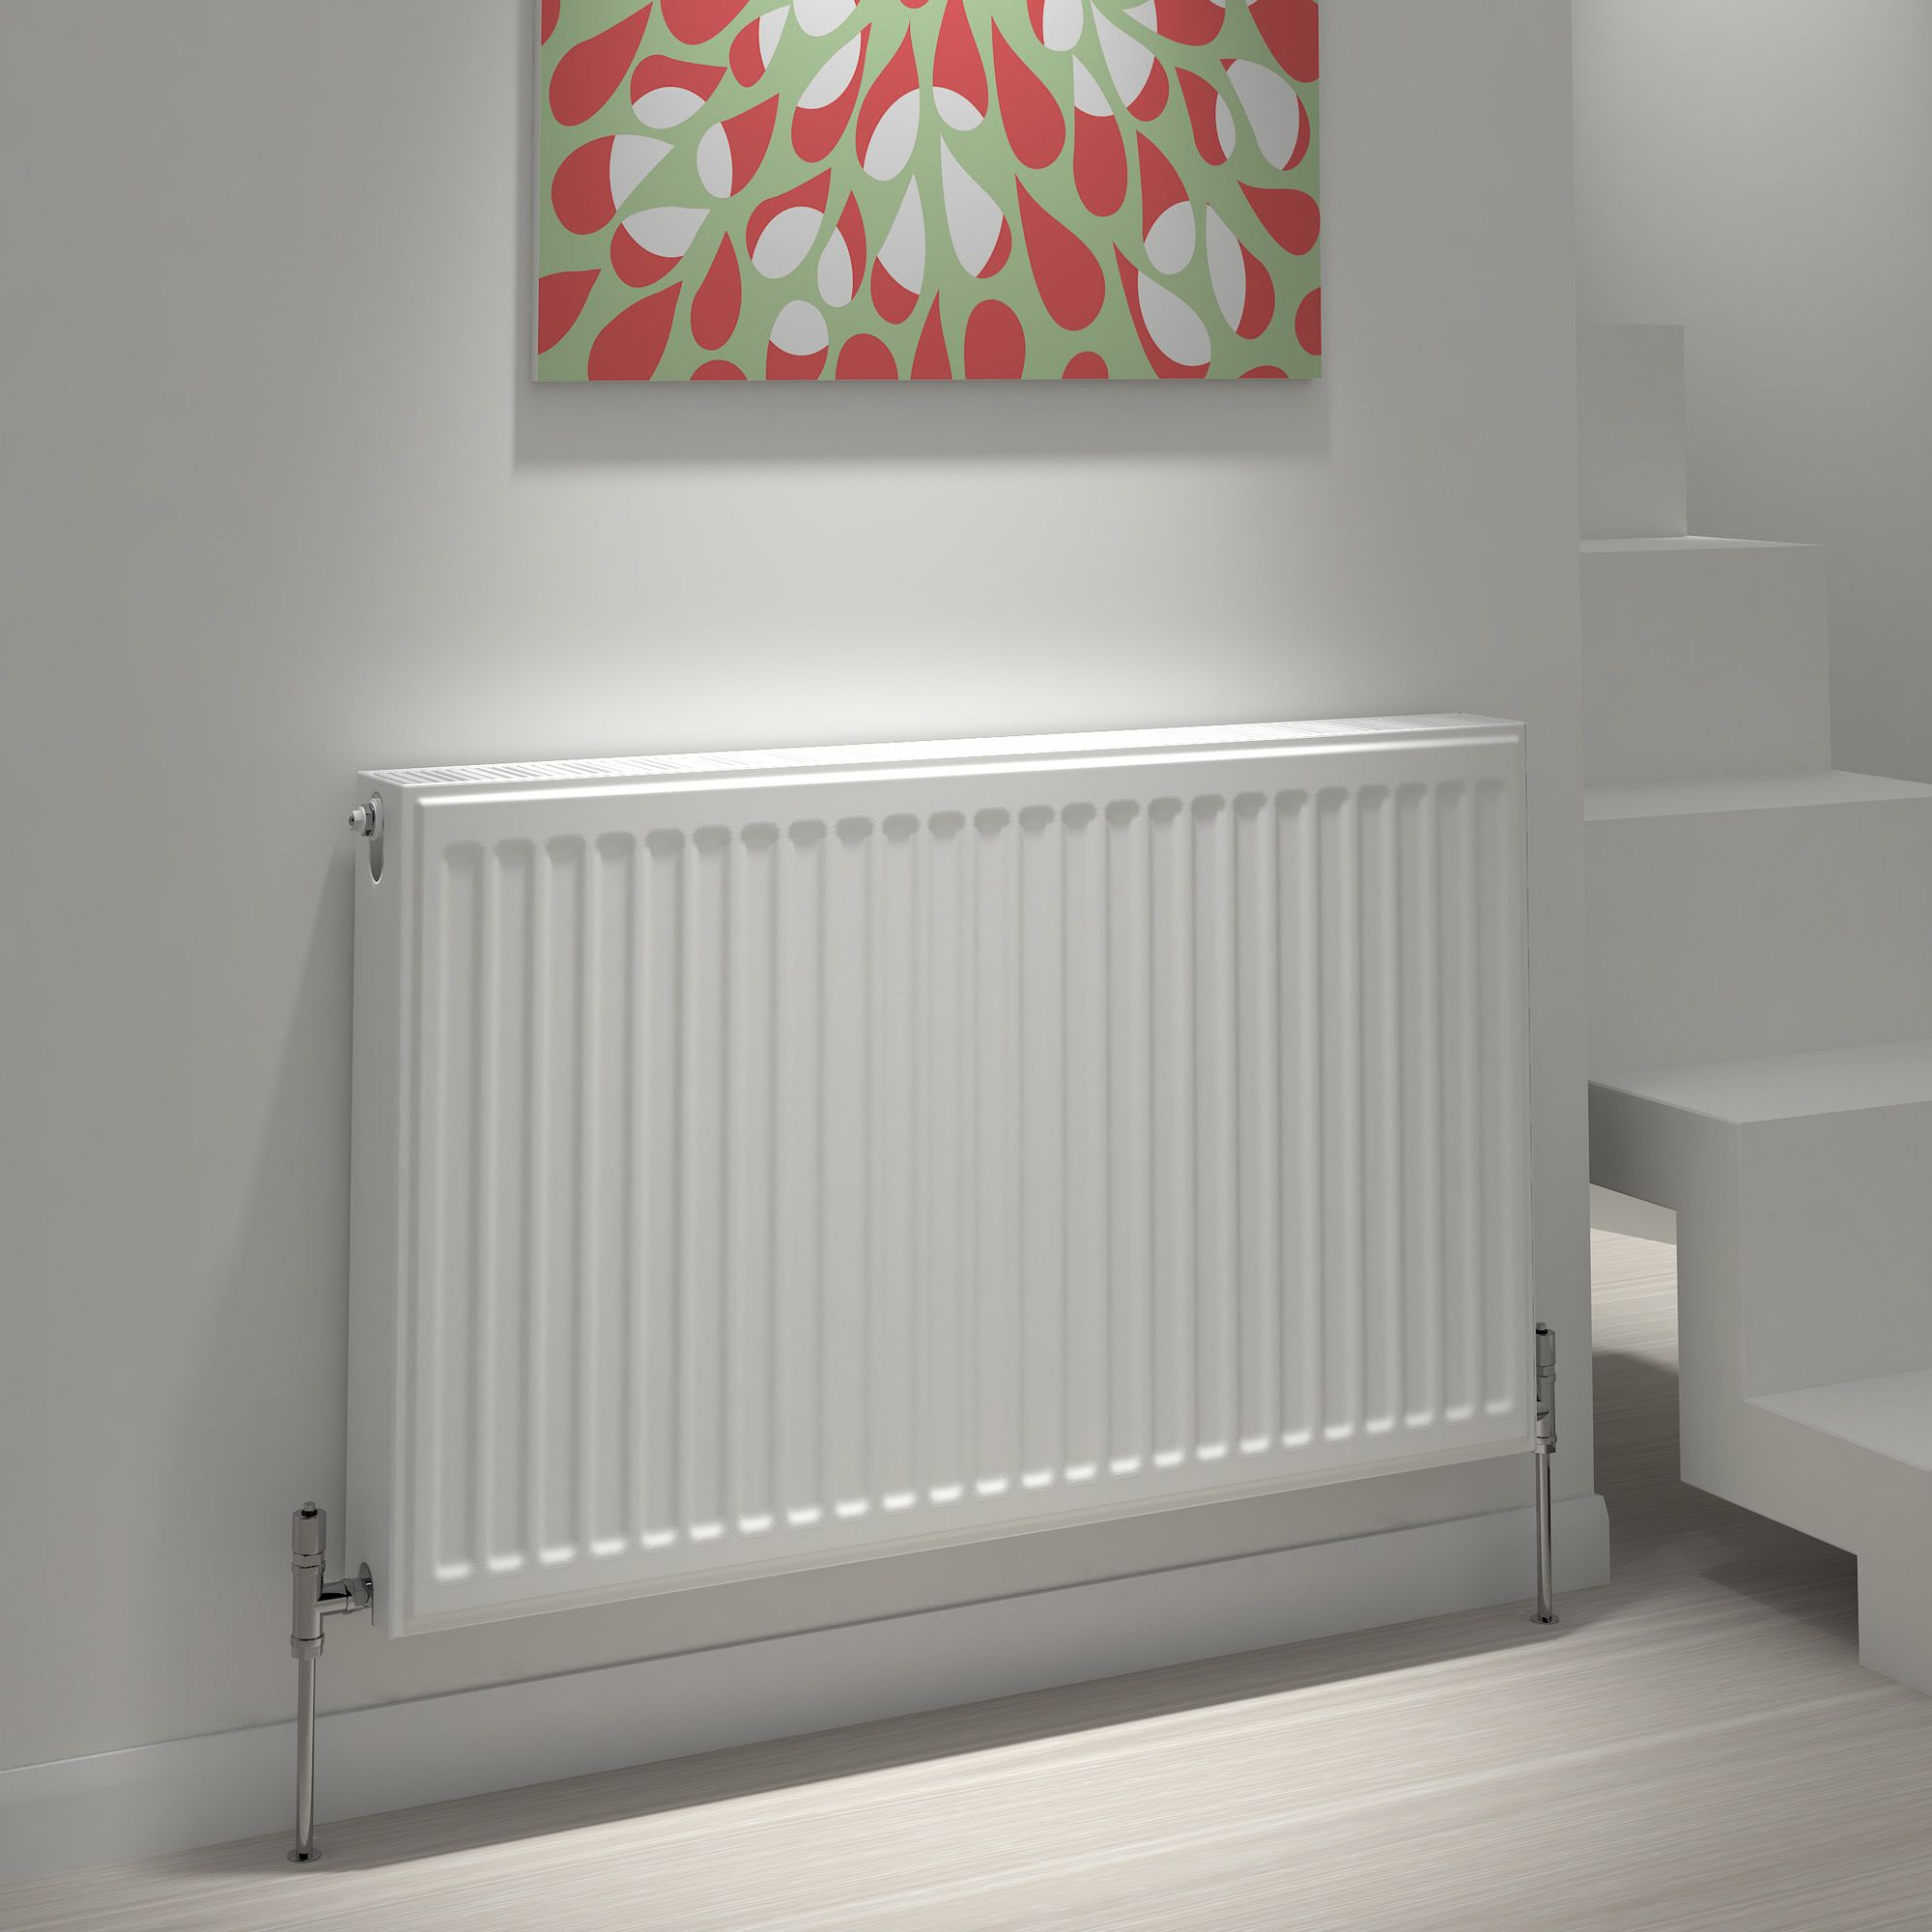 Kudox Type 11 Single Panel Radiator, (H)600mm (W)1000mm